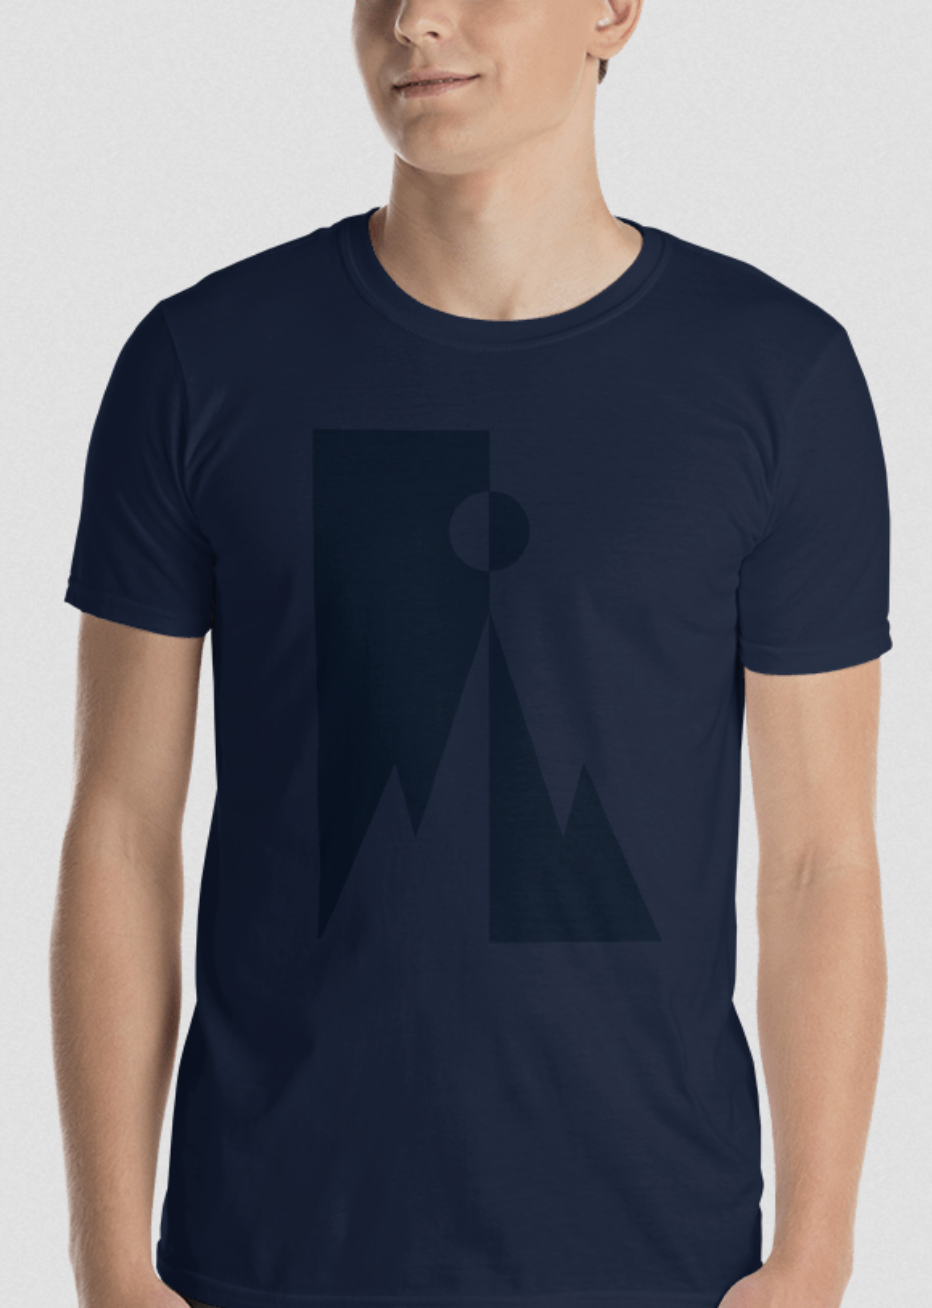 Image of Climb - navy blue